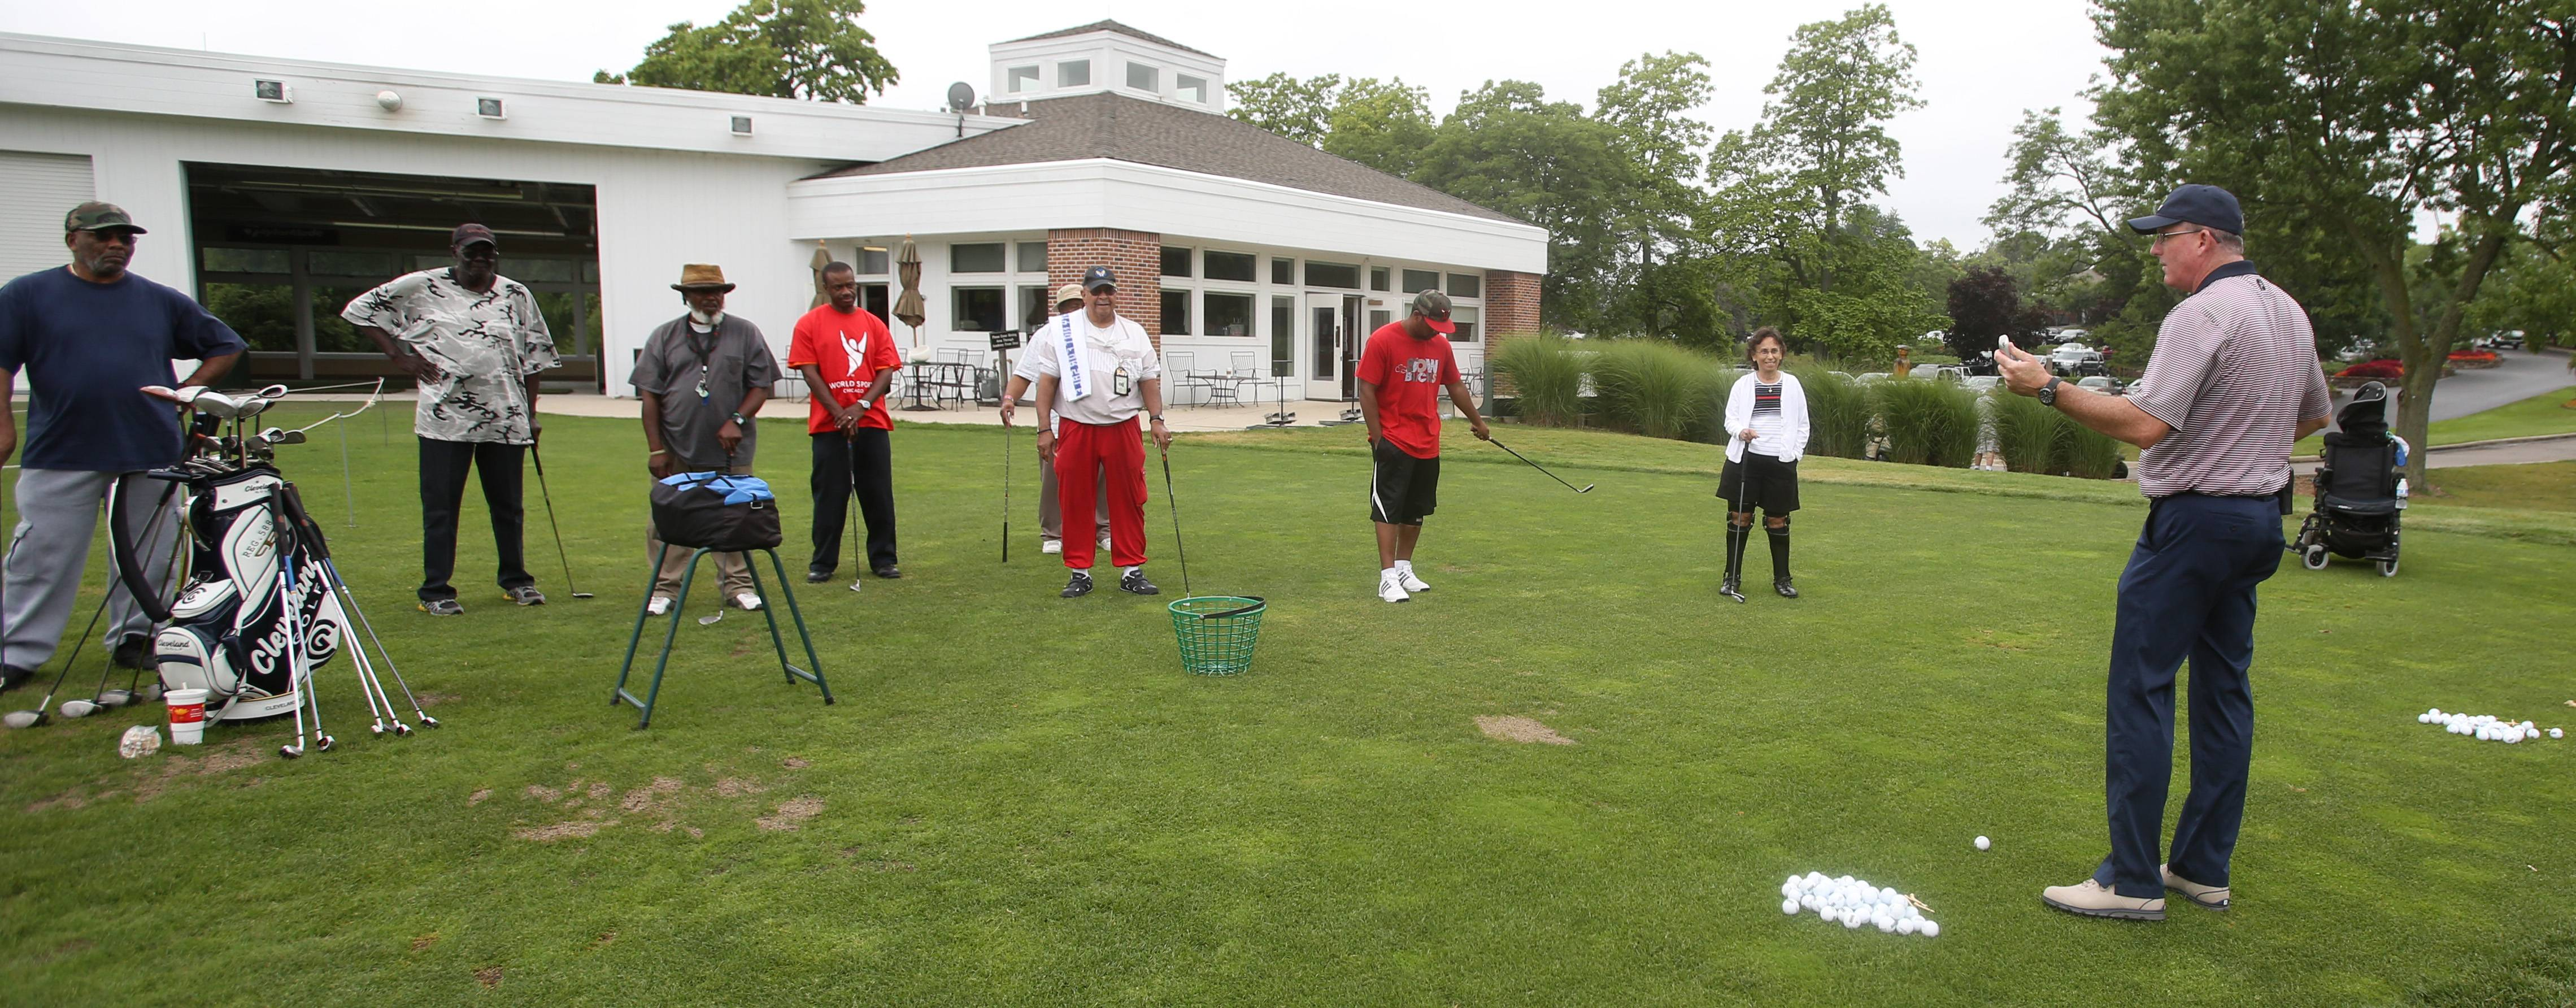 Cantigny Golf pro Patrick Lynch reviews irons technique during a clinic for veterans with physical disabilities and PTSD.